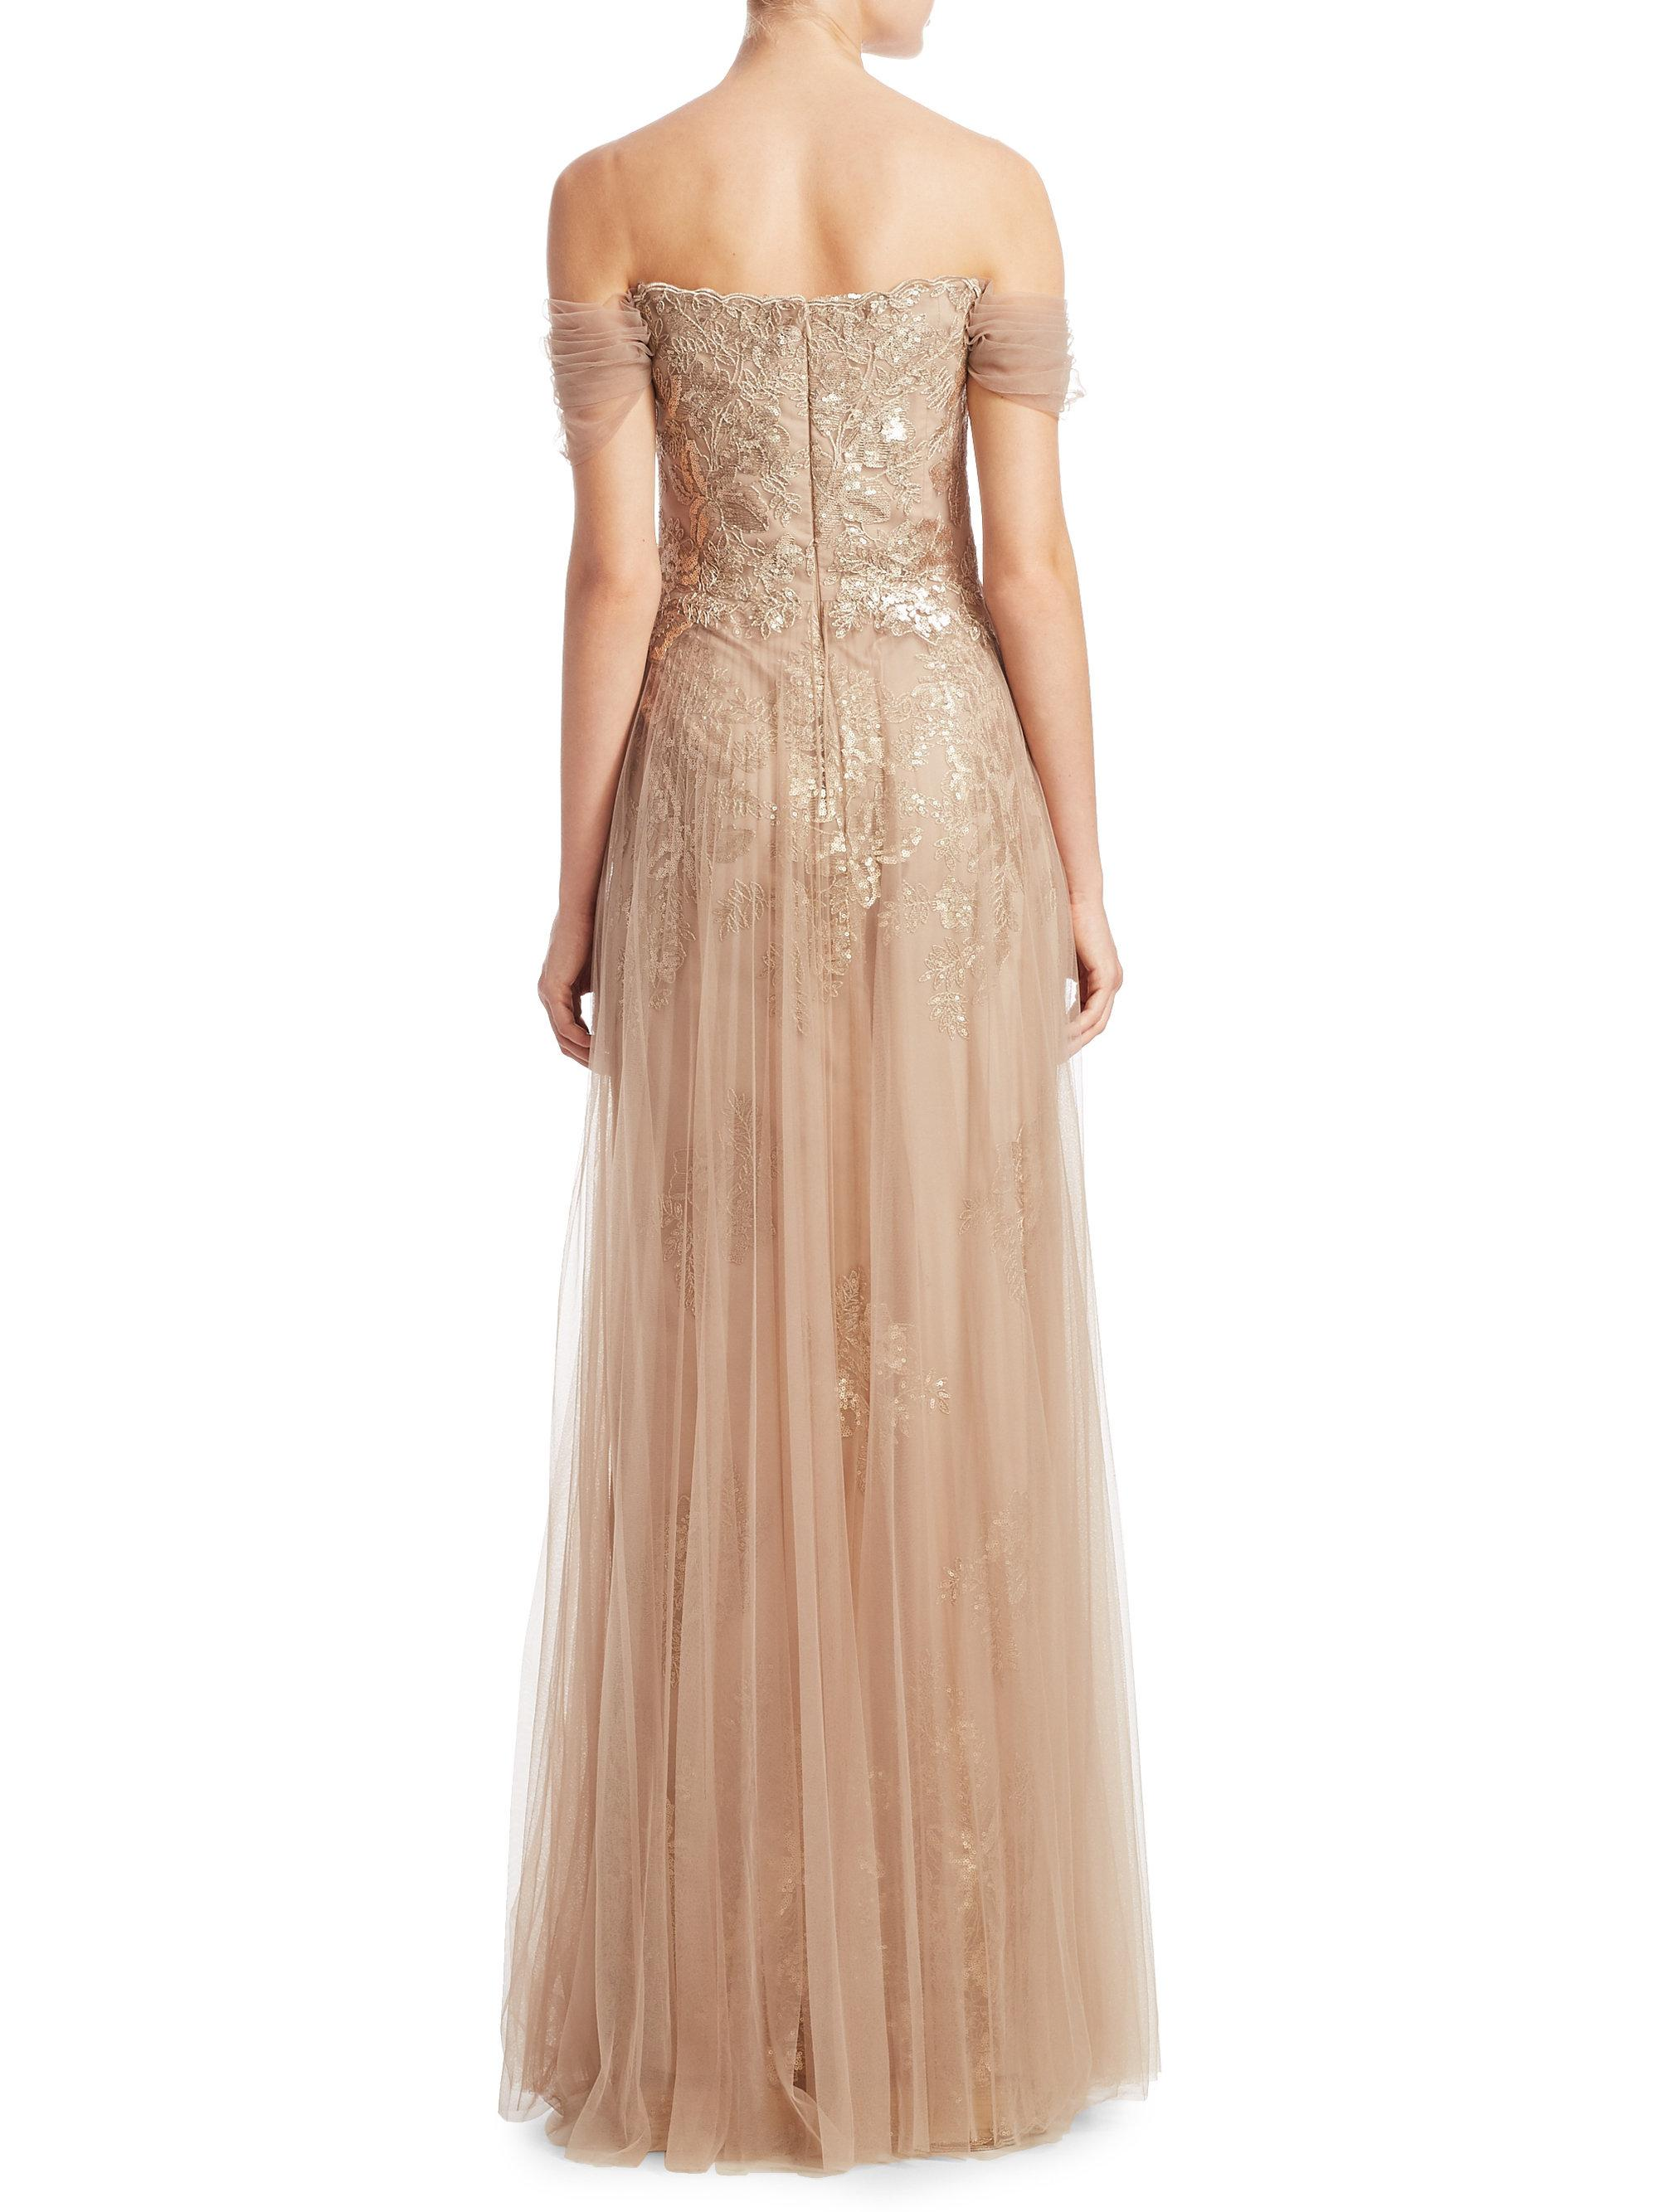 Lyst - Teri jon Off-the-shoulder Pleated Tulle Evening Gown in Natural